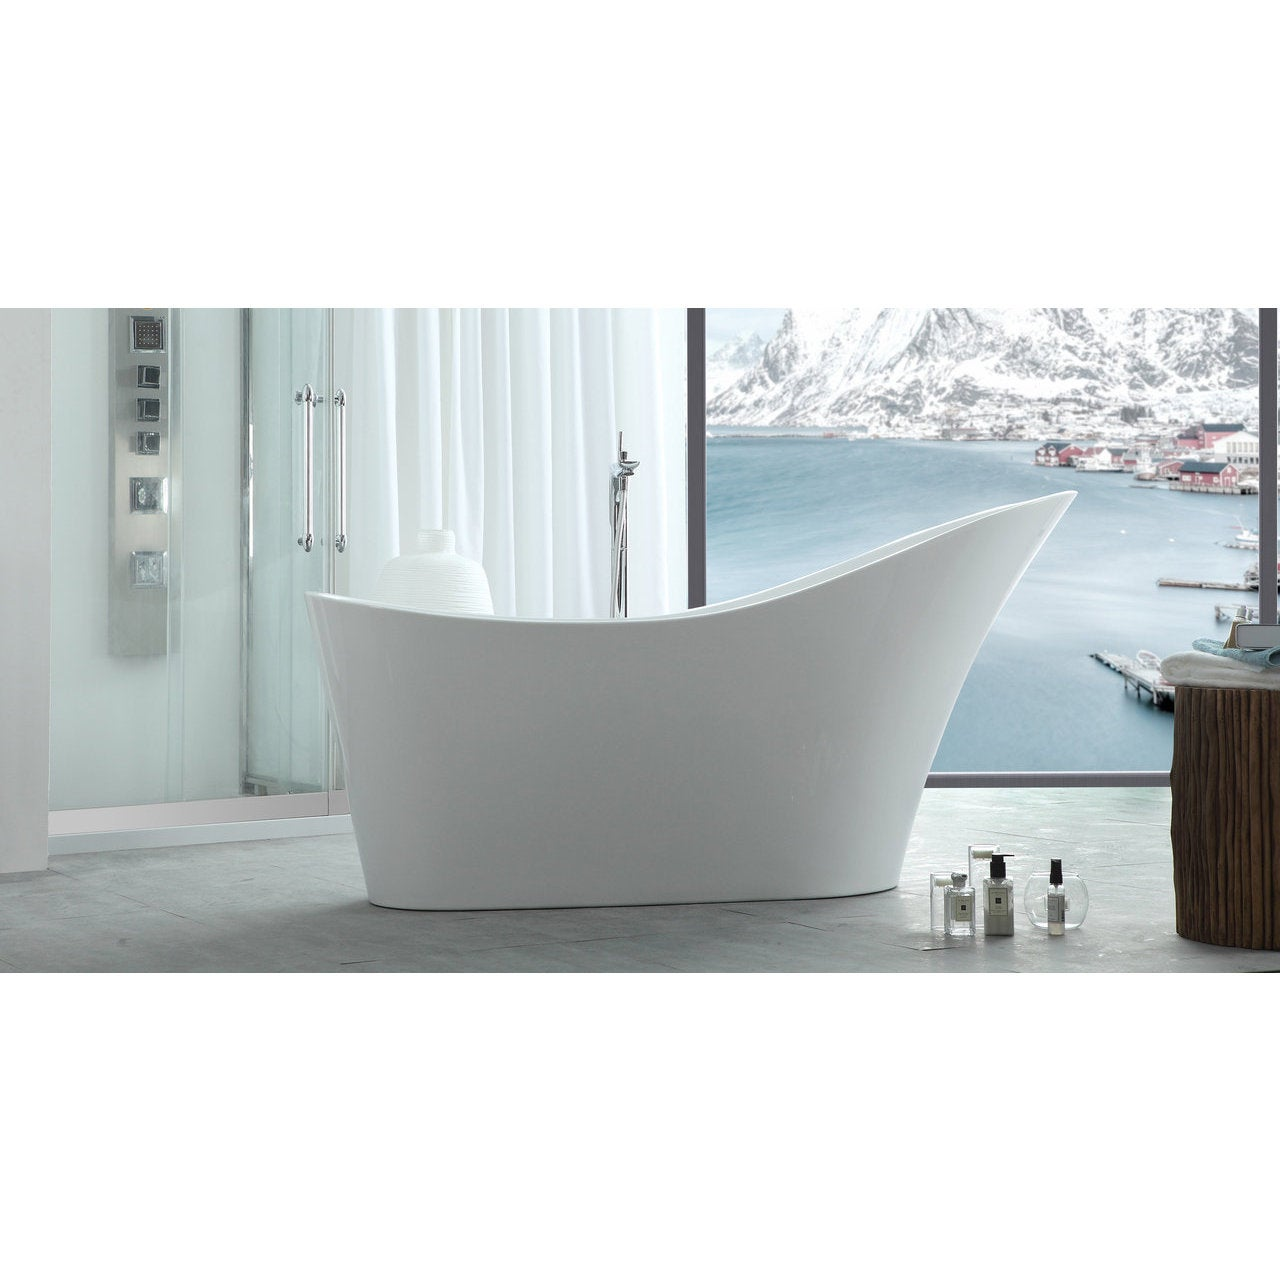 Marvelous Silhouette HelixBath Caracalla Modern White Freestanding .